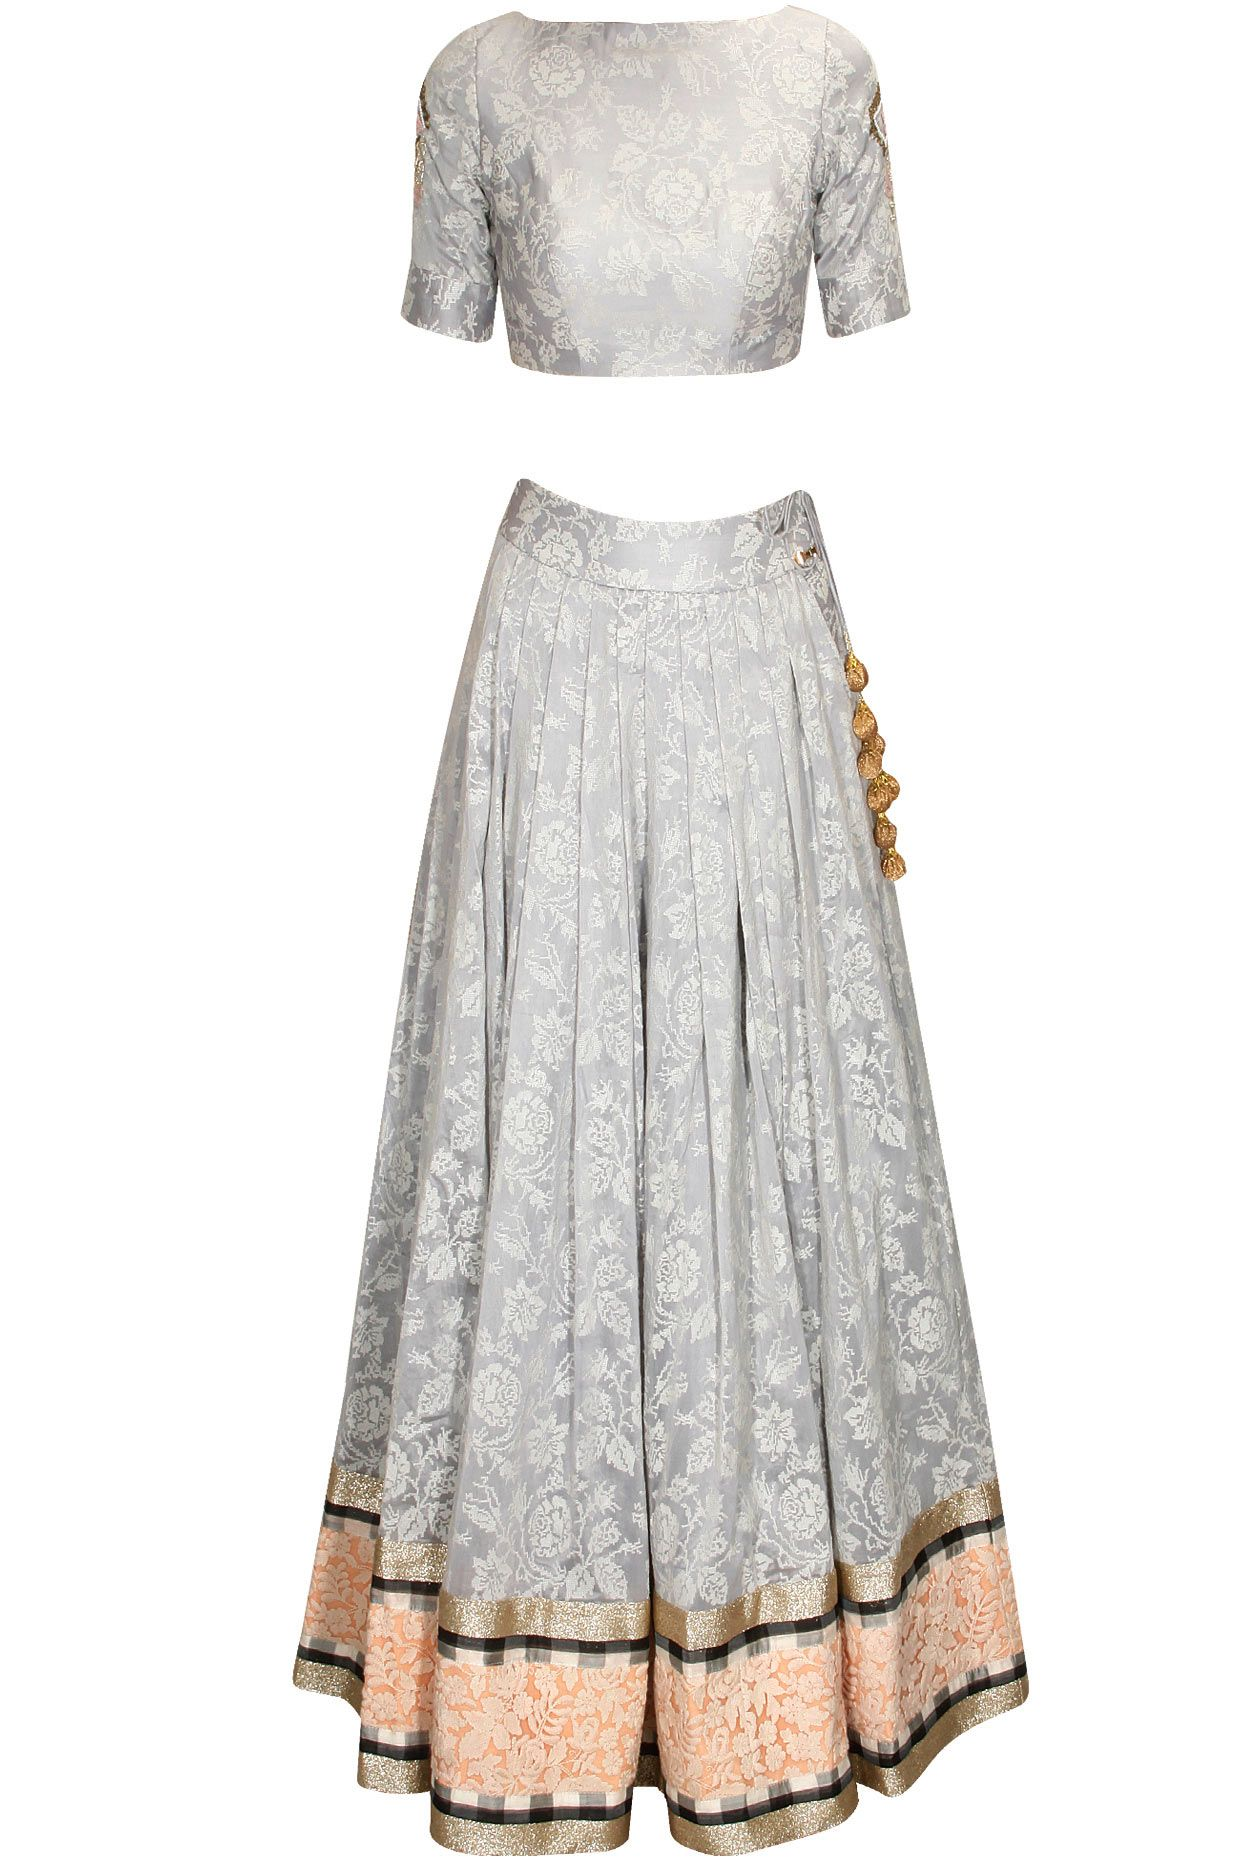 5fd5509223 Gray cross stitch rose embroidered crop top and skirt set available only at  Pernia's Pop Up Shop.